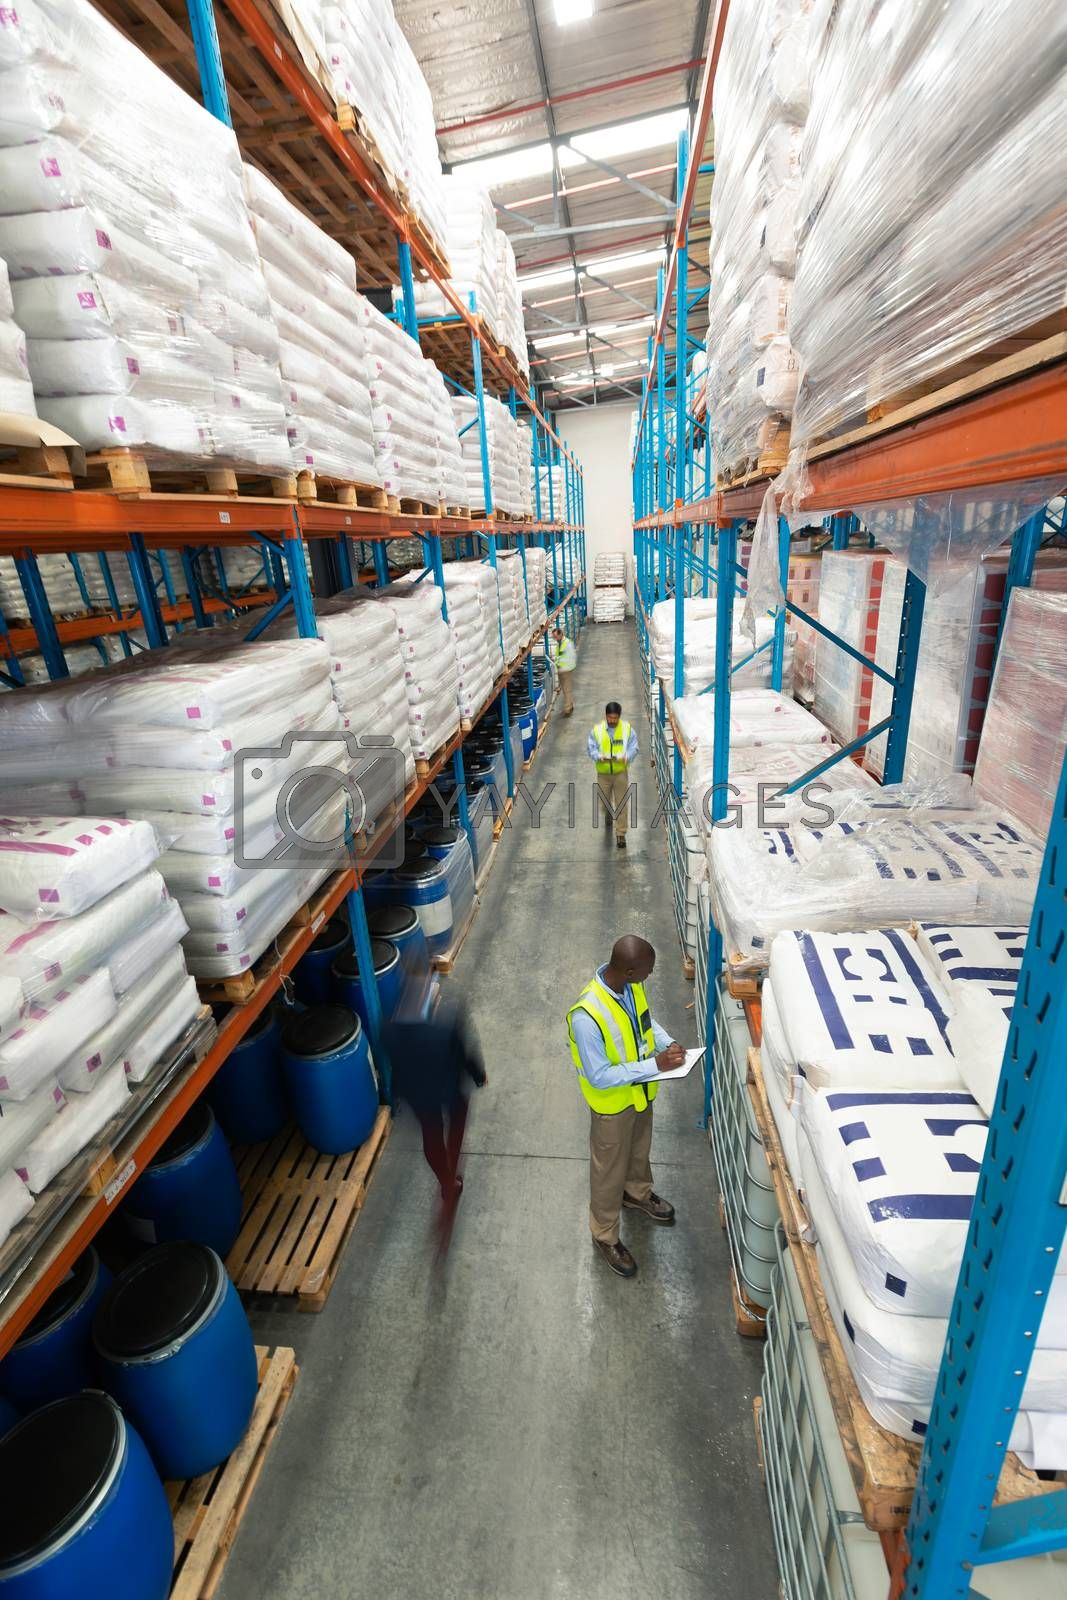 High angle view of diverse warehouse staff checking stocks in aisle in warehouse. They are holding clipboards and writing in it. This is a freight transportation and distribution warehouse. Industrial and industrial workers concept